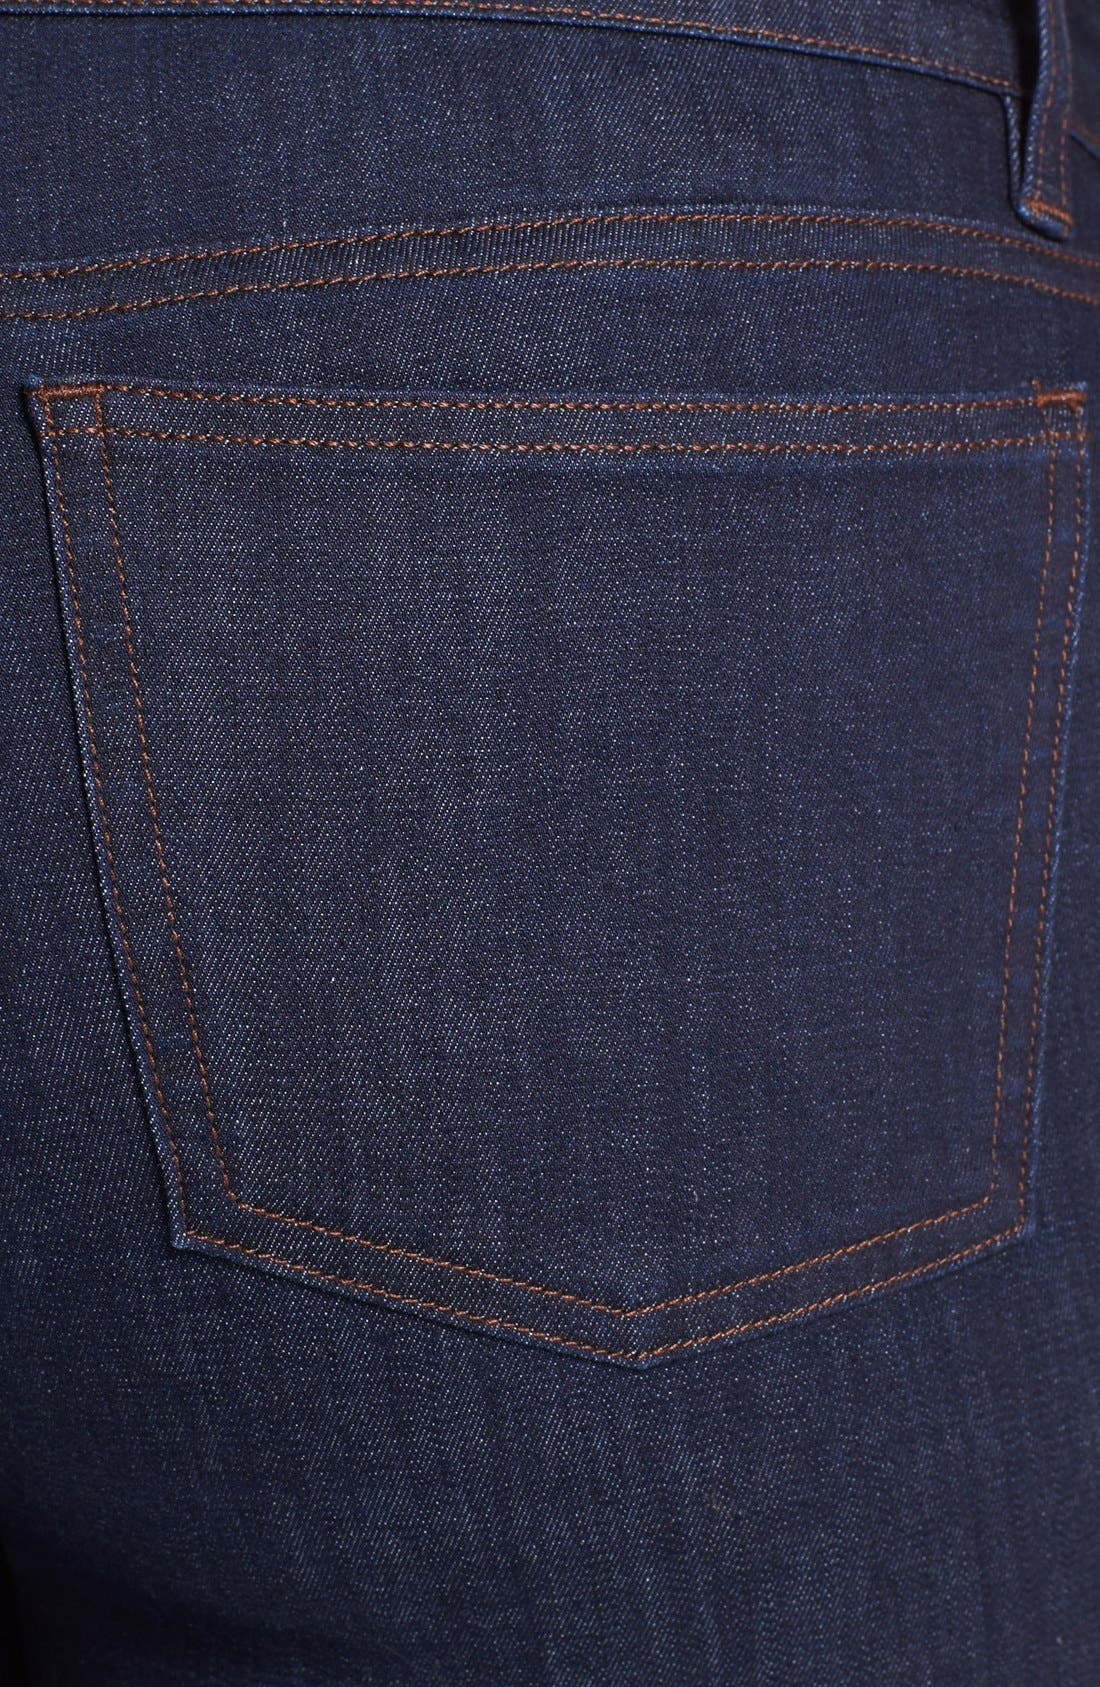 Alternate Image 3  - Eileen Fisher Skinny Jeans (Plus Size)